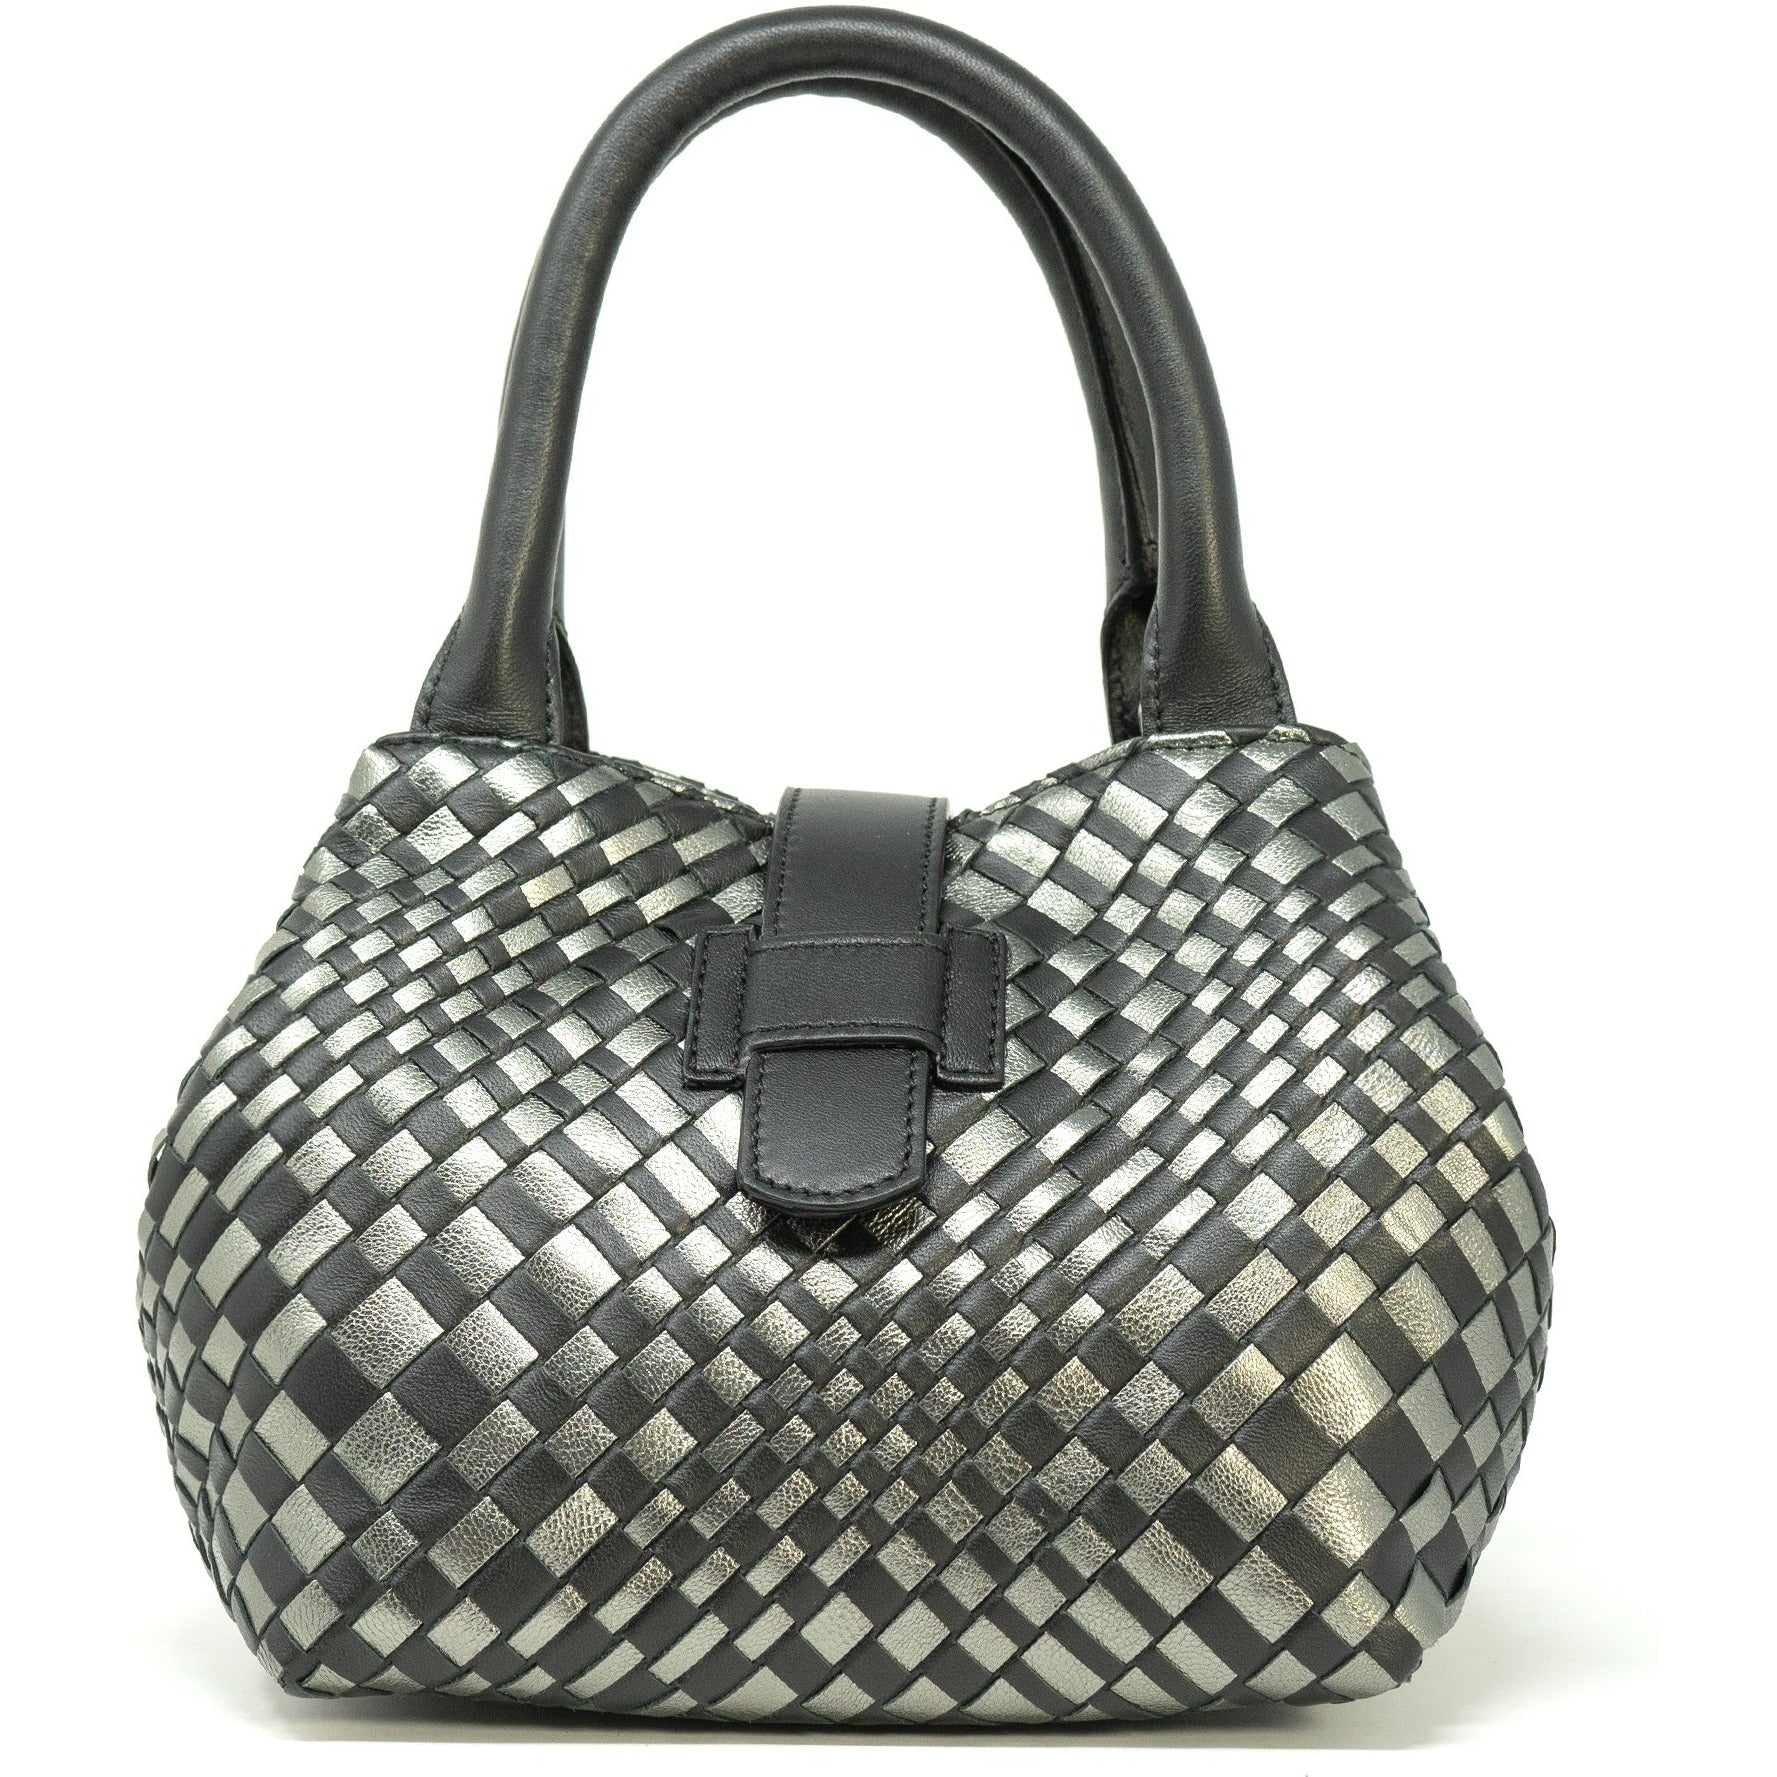 Lucia Top Handle Bag in Black